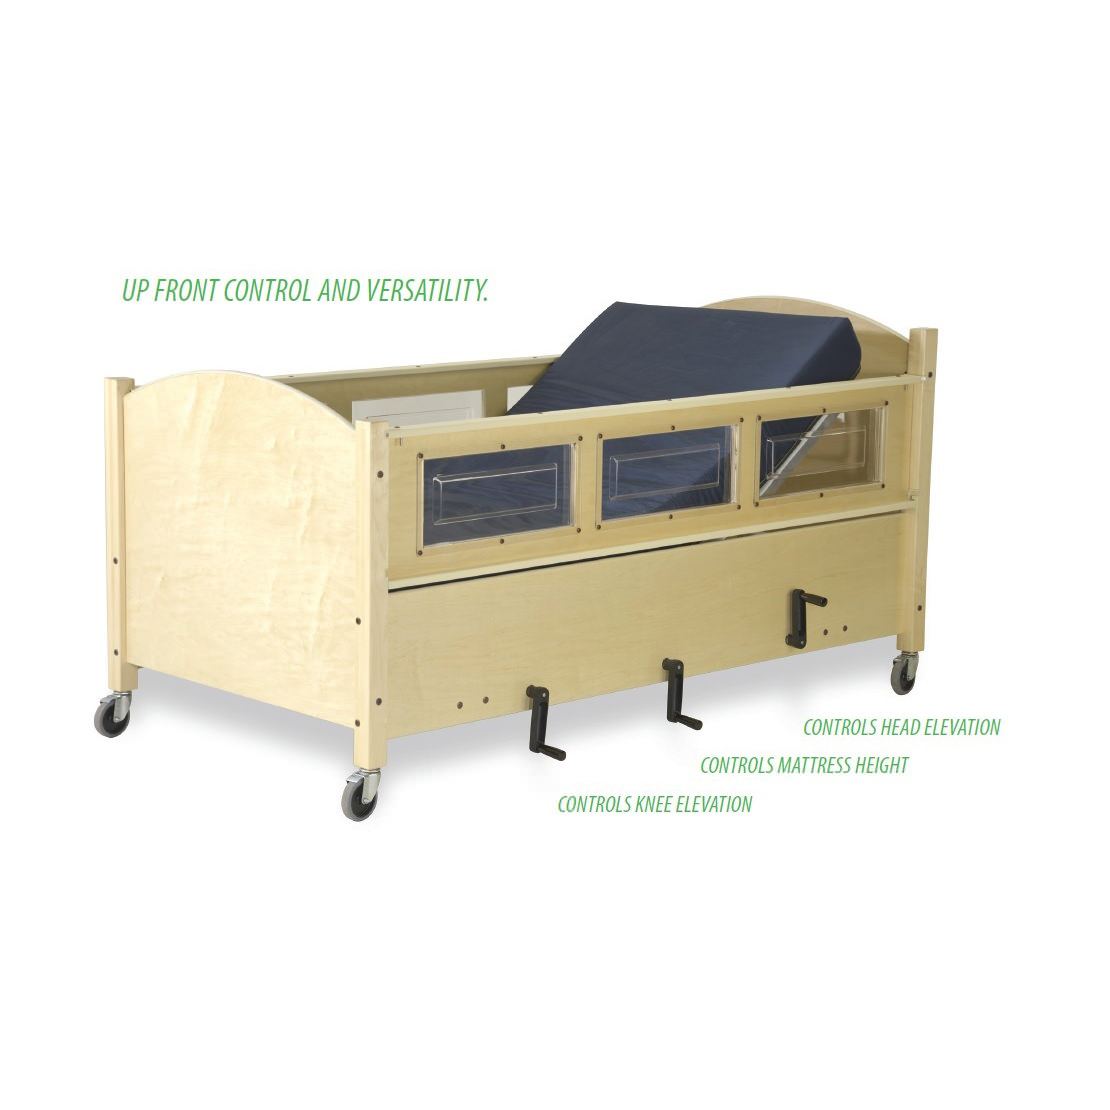 SleepSafer manual hi-lo bed with dual view